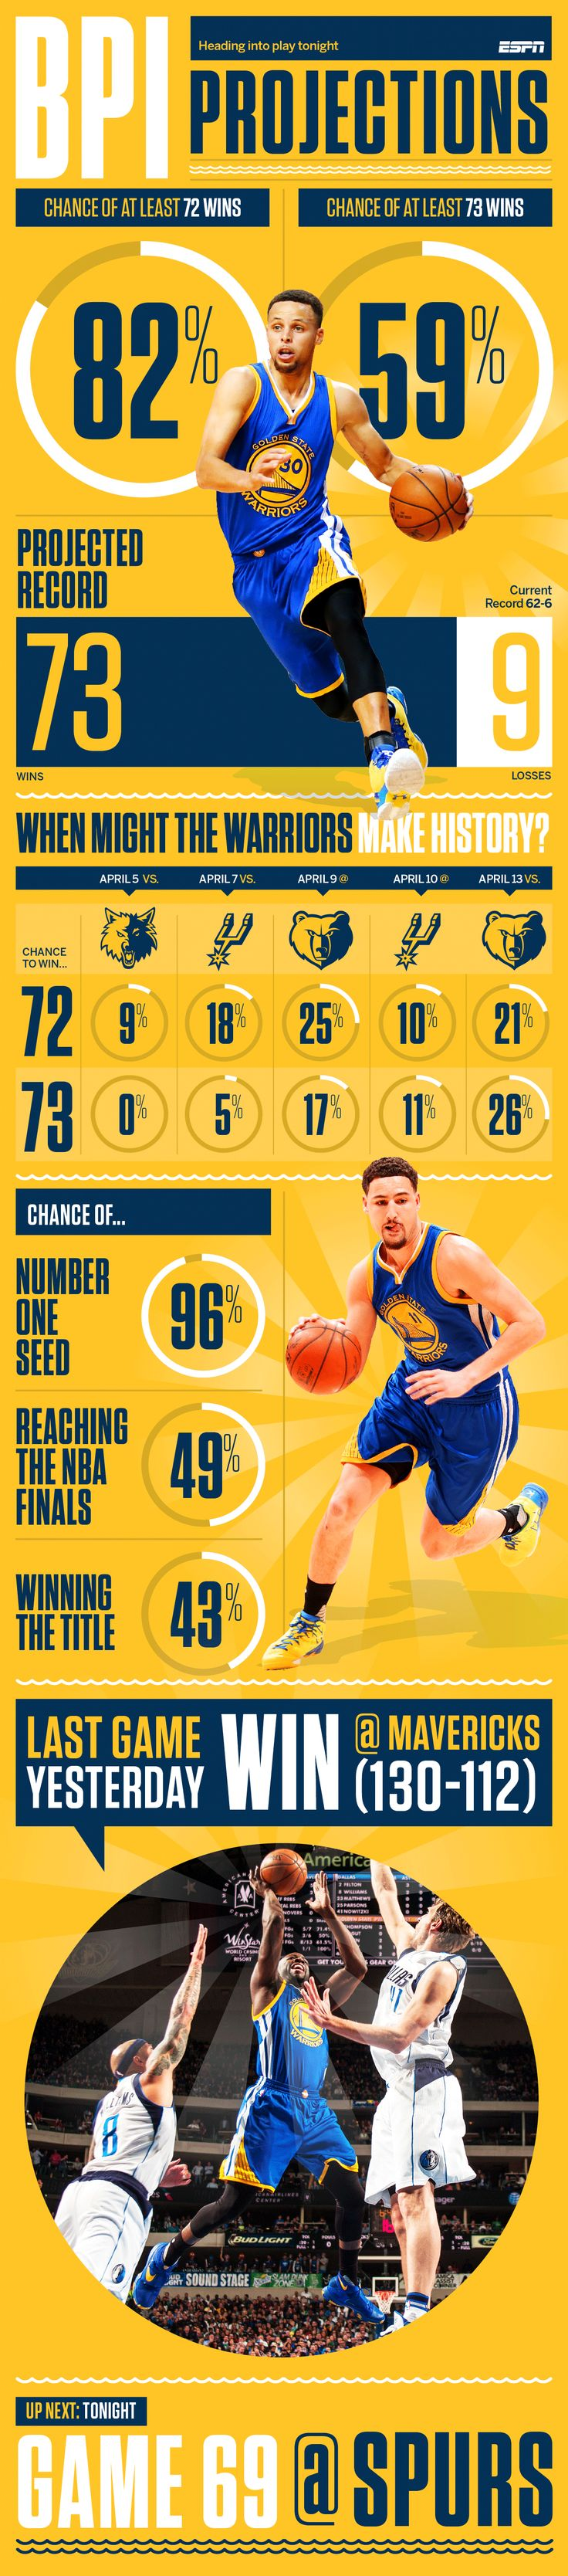 NBA - Golden State Warriors chasing 1995-96 Chicago Bulls